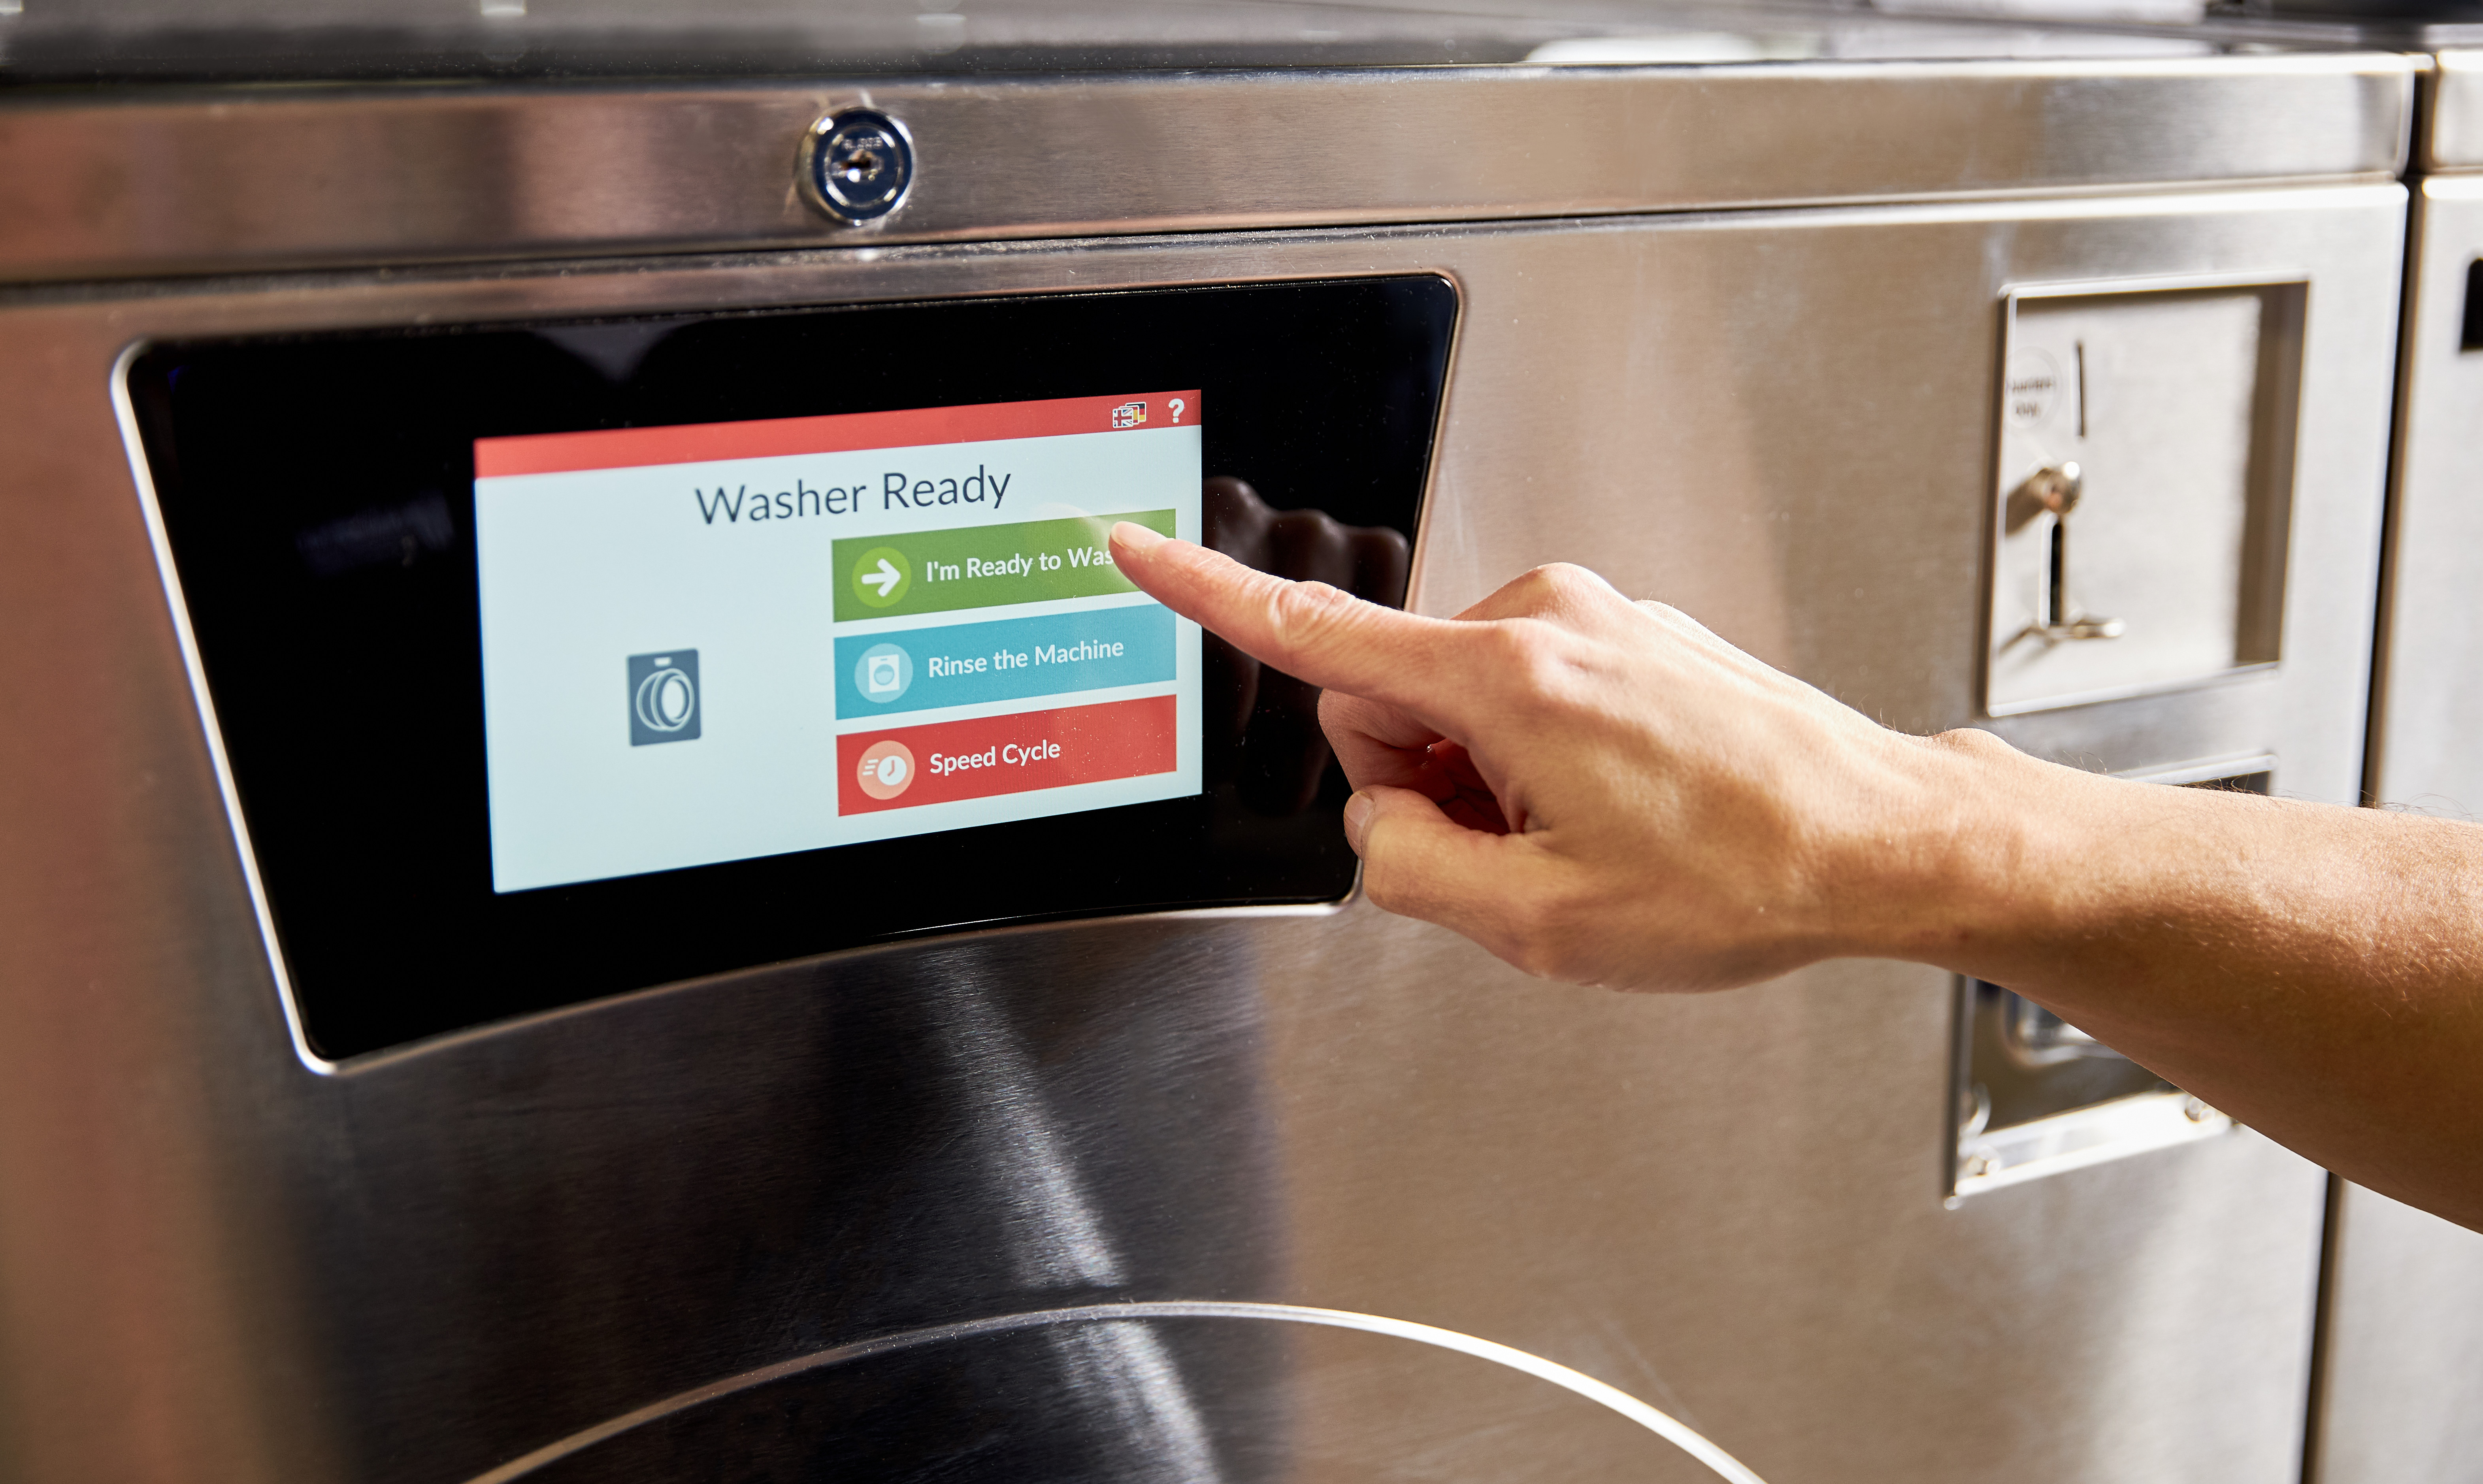 Converting to franchise model can help elevate your laundromat's customer experience